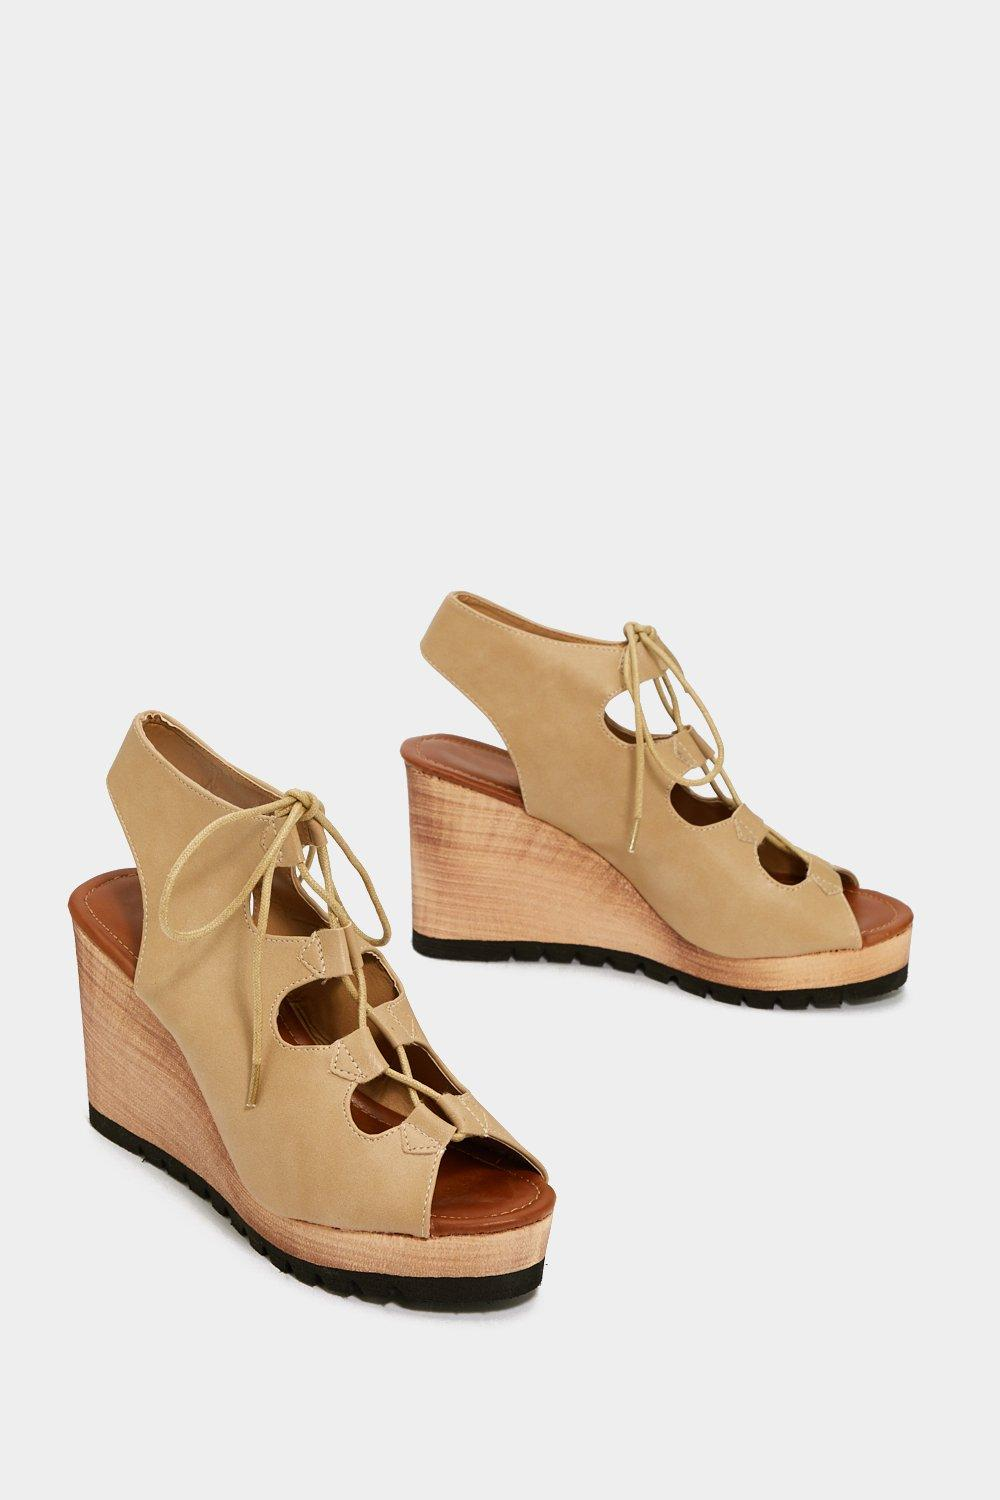 Lace-Up Your Bets Wedge Sandal sale for sale cheap sale looking for newest for sale clearance deals 7mVdn